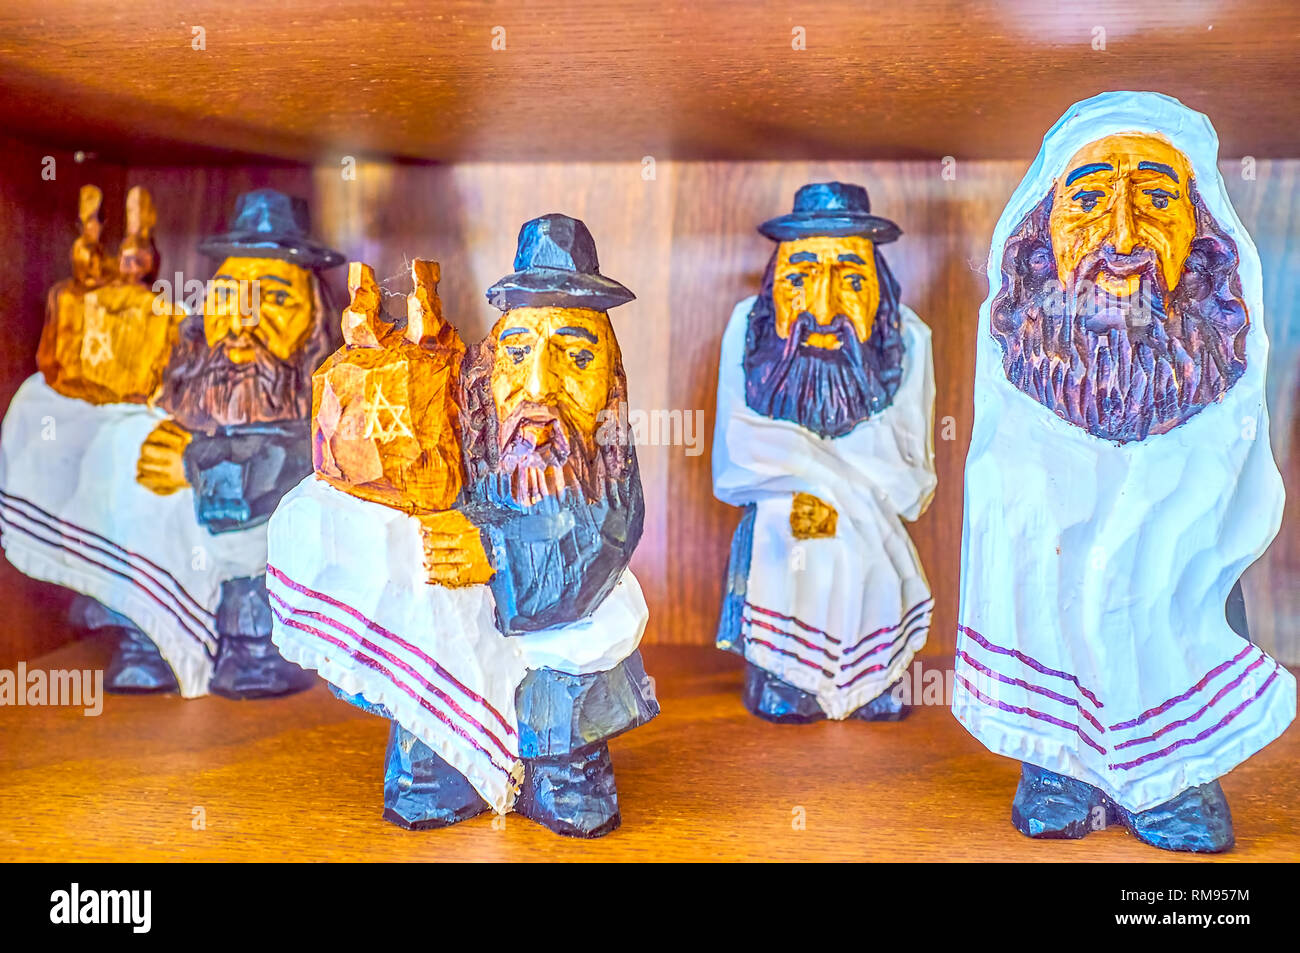 The small wooden figurines of the Rabbies, some of them with Scrolls of Torah, Krakow, Poland Stock Photo